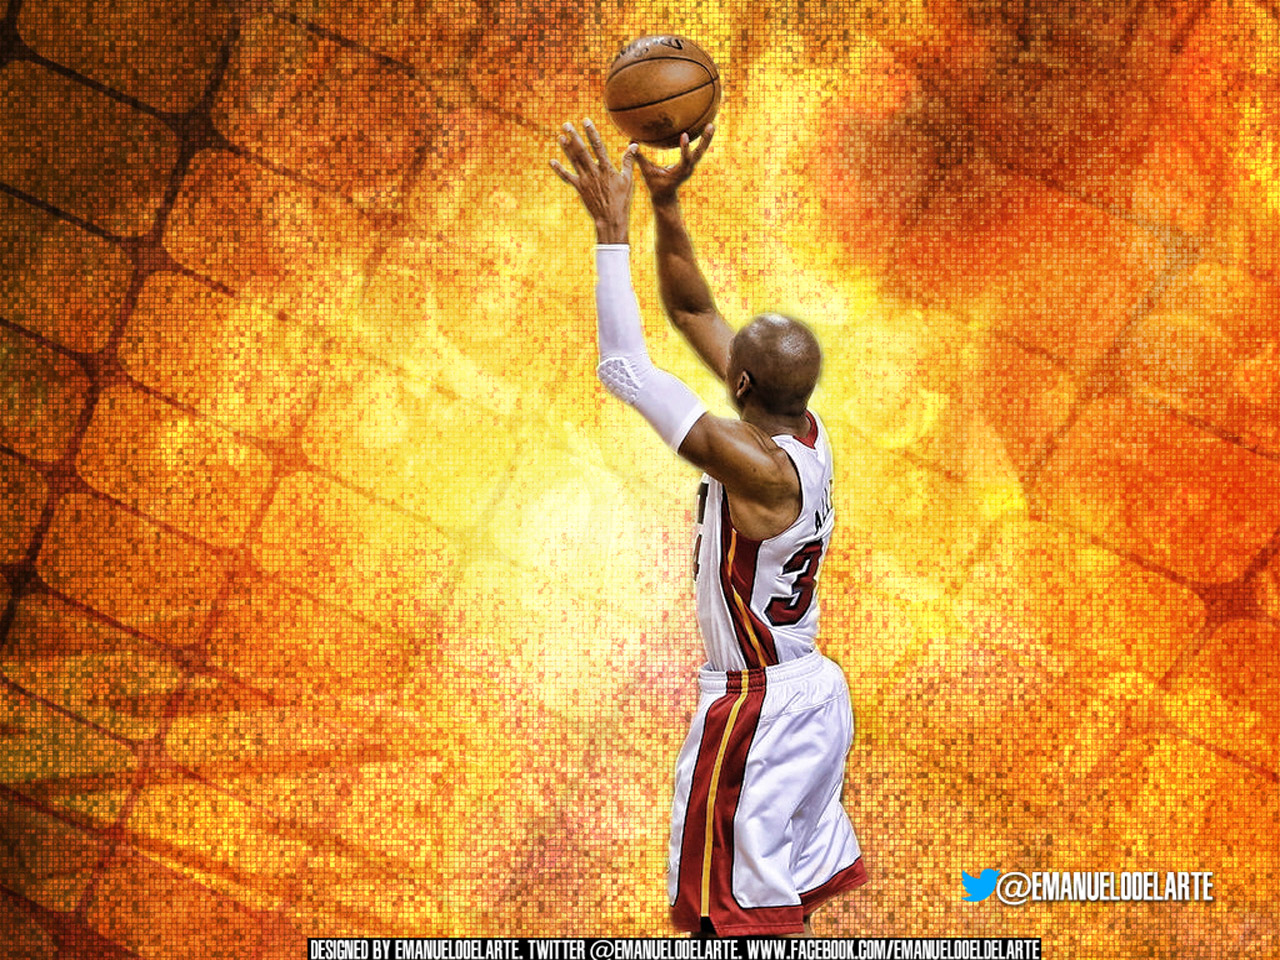 Ray Allen Wallpapers | Basketball Wallpapers at BasketWallpapers.com